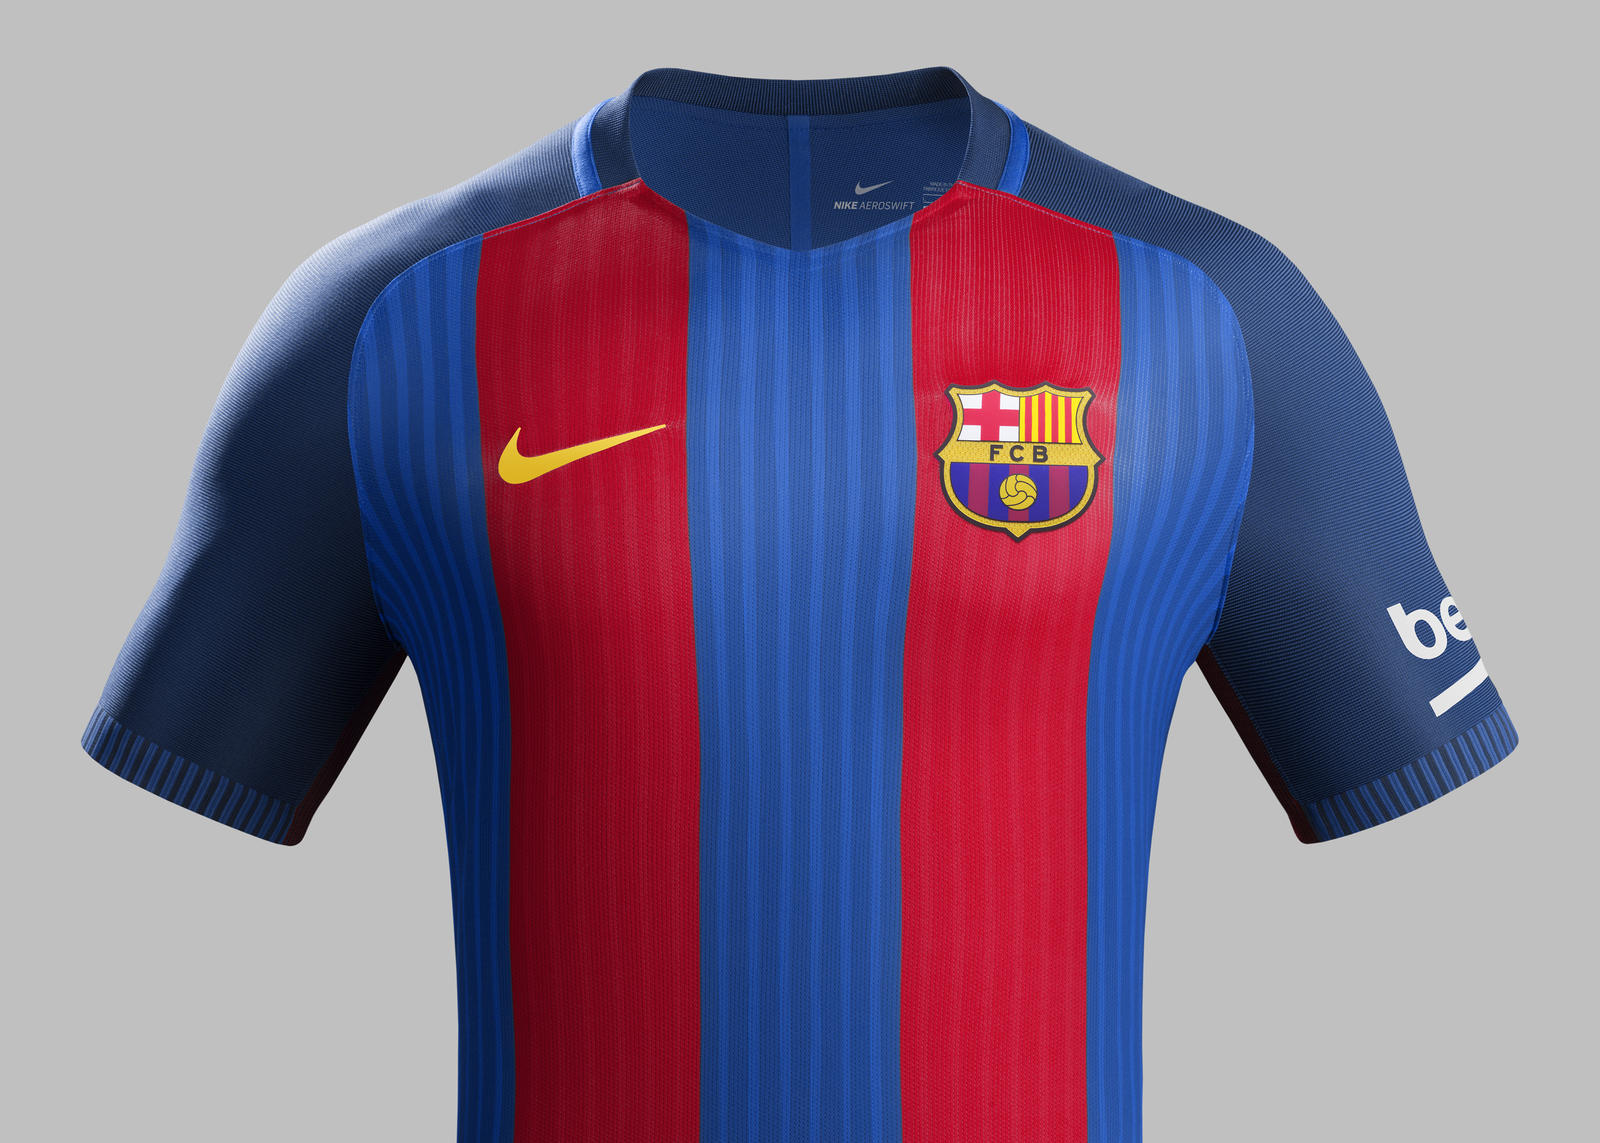 1af9587933 Su16 CK Comms H Front Match FCB R. FC Barcelona home kit 2016-2017.  Su16 CK Comms H Crest Match FCB R